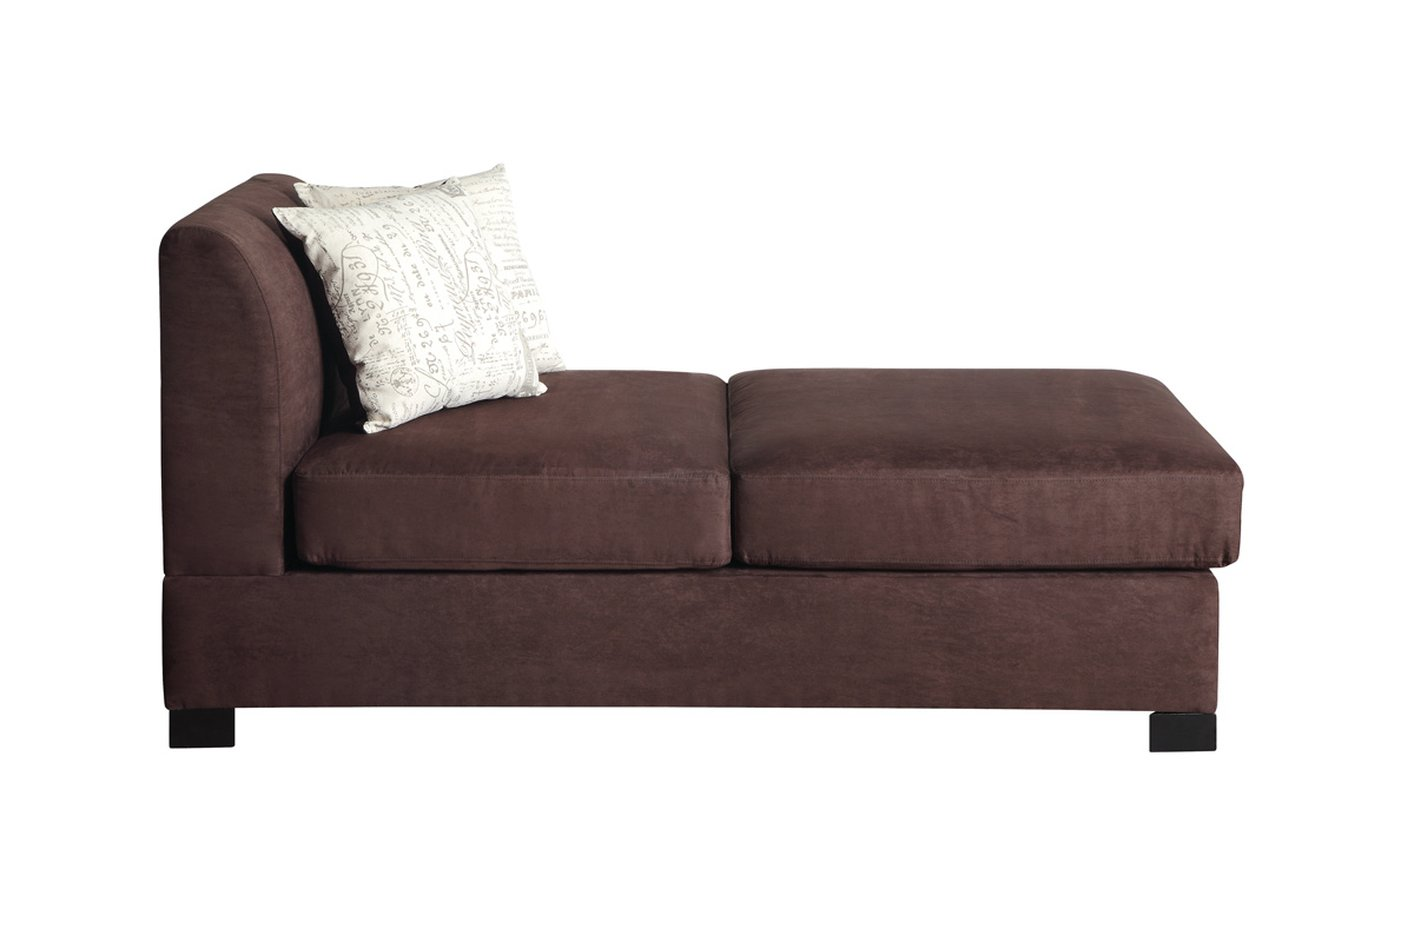 Poundex Nia F7979 Brown Fabric Chaise Lounge Steal A